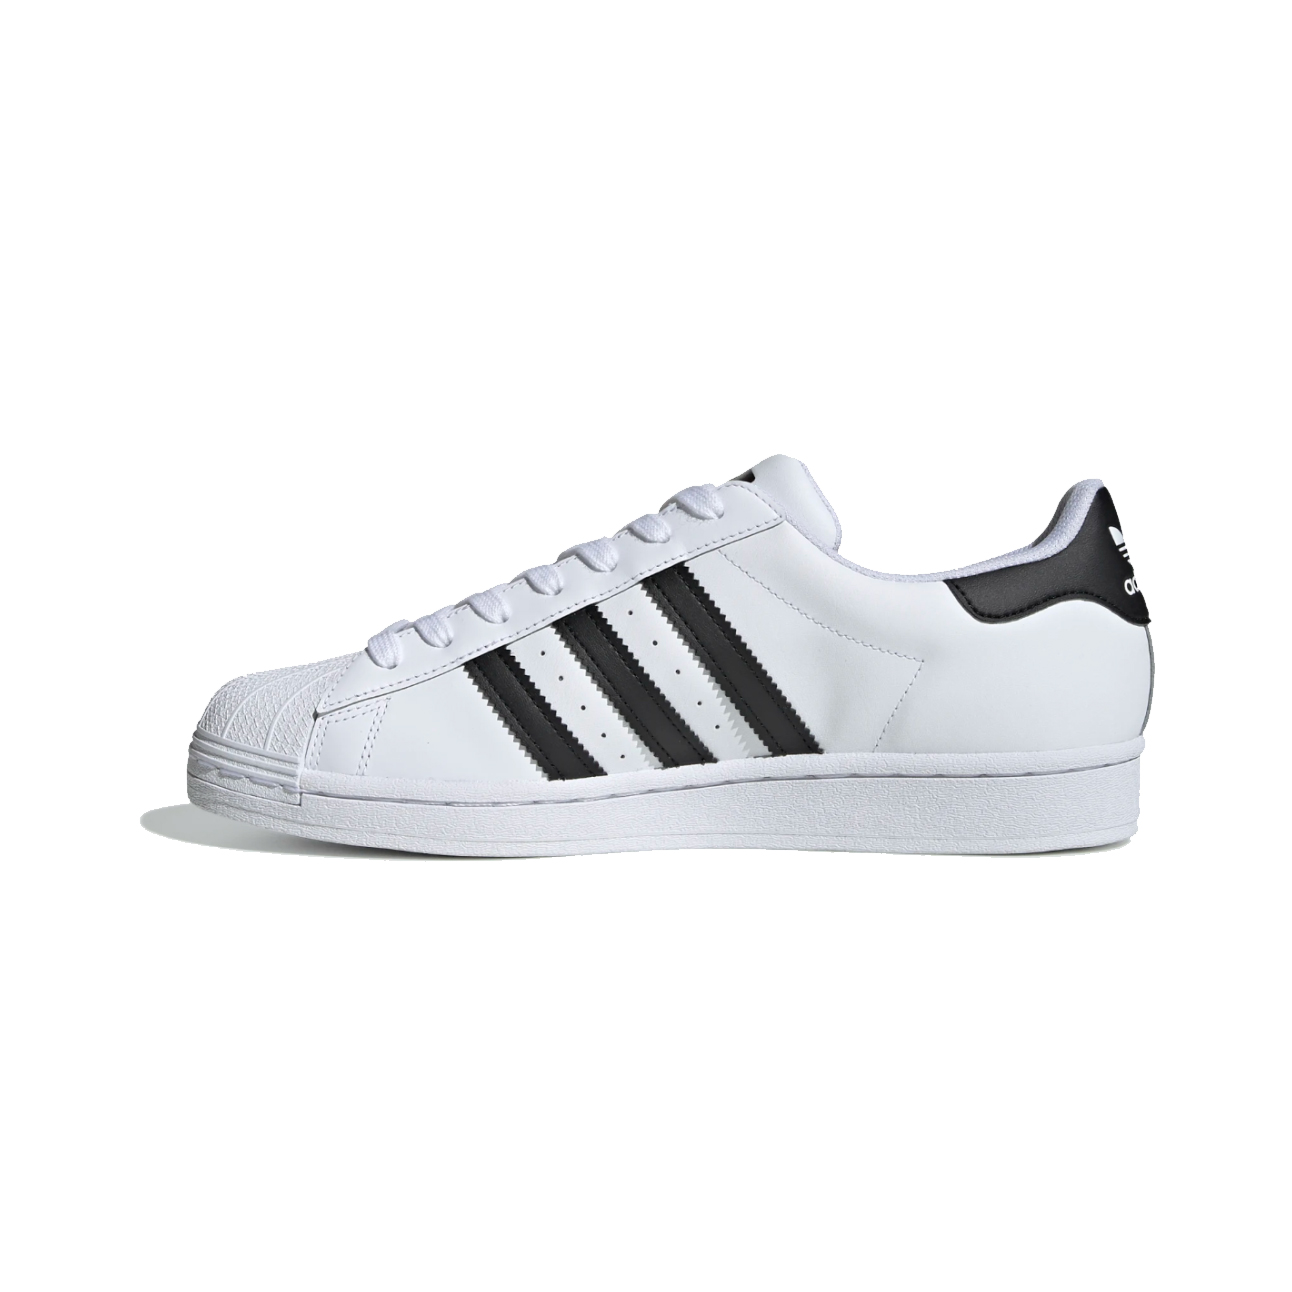 SNEAKERS ADIDAS SUPERSTAR CLOUD WHITE CORE BLACK